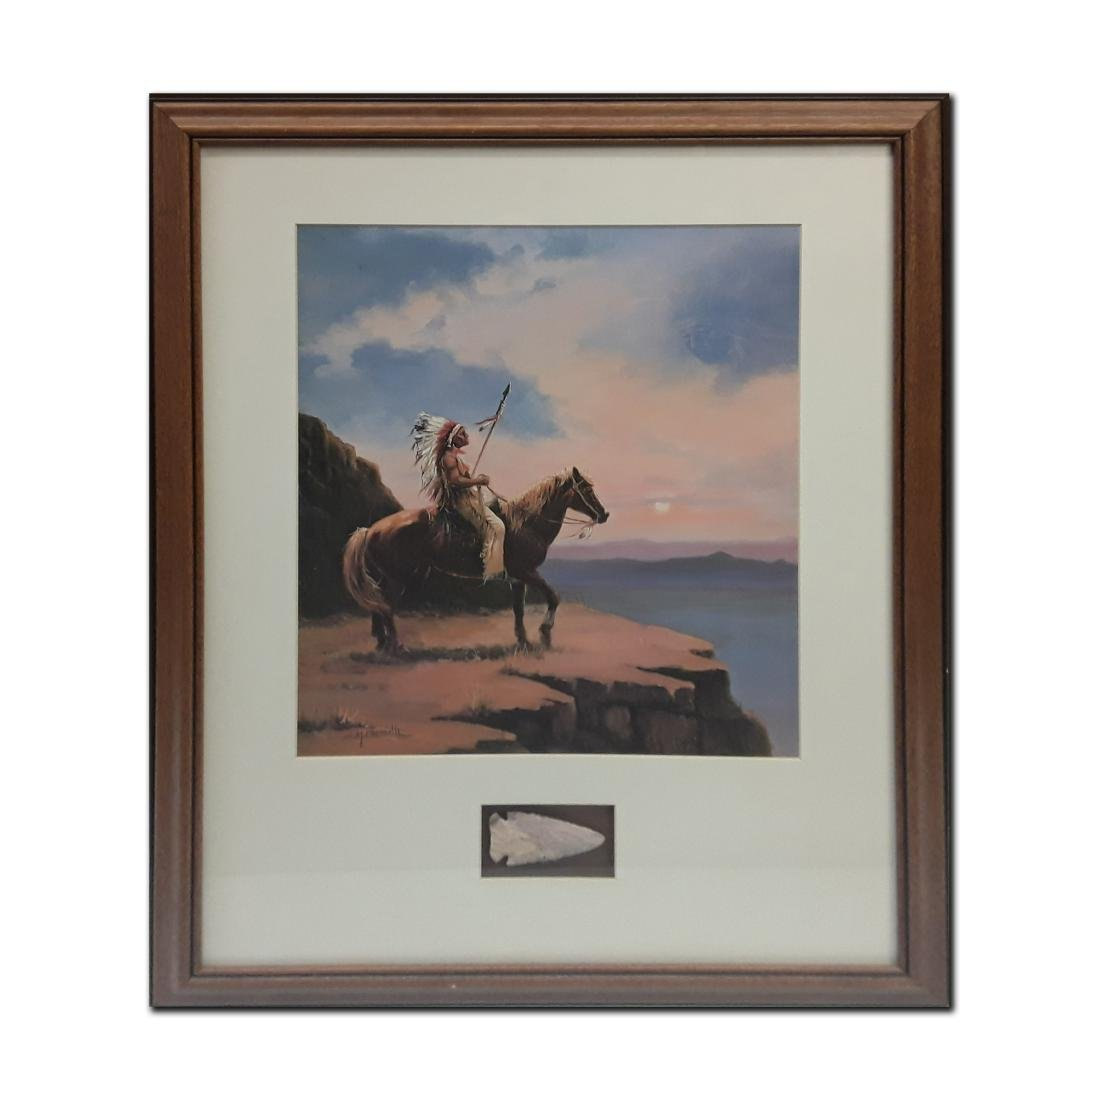 Native American themed framed print with an